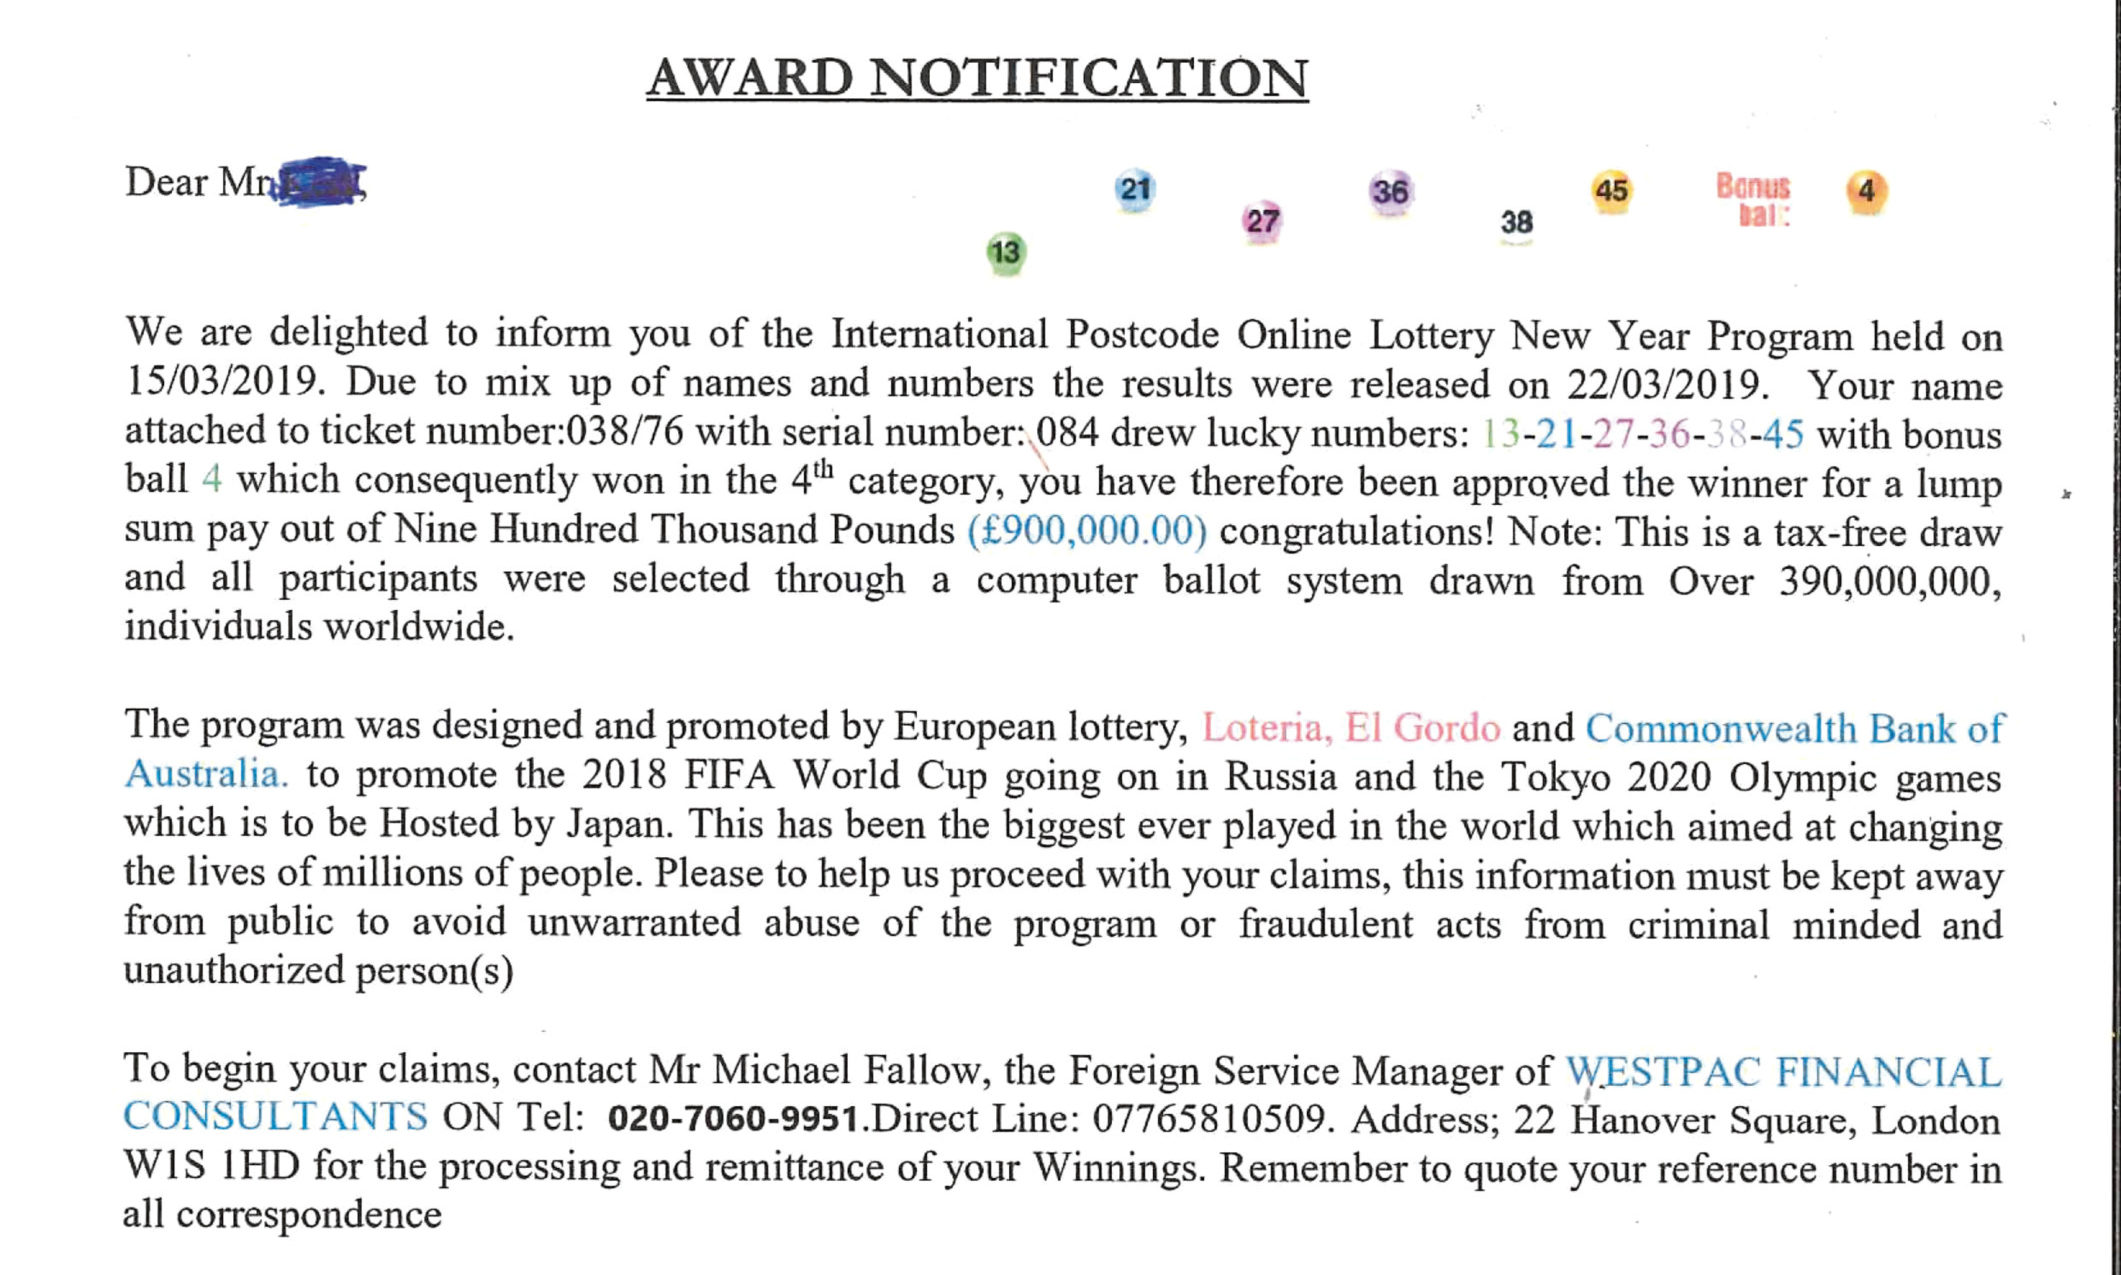 The scam letter circulating